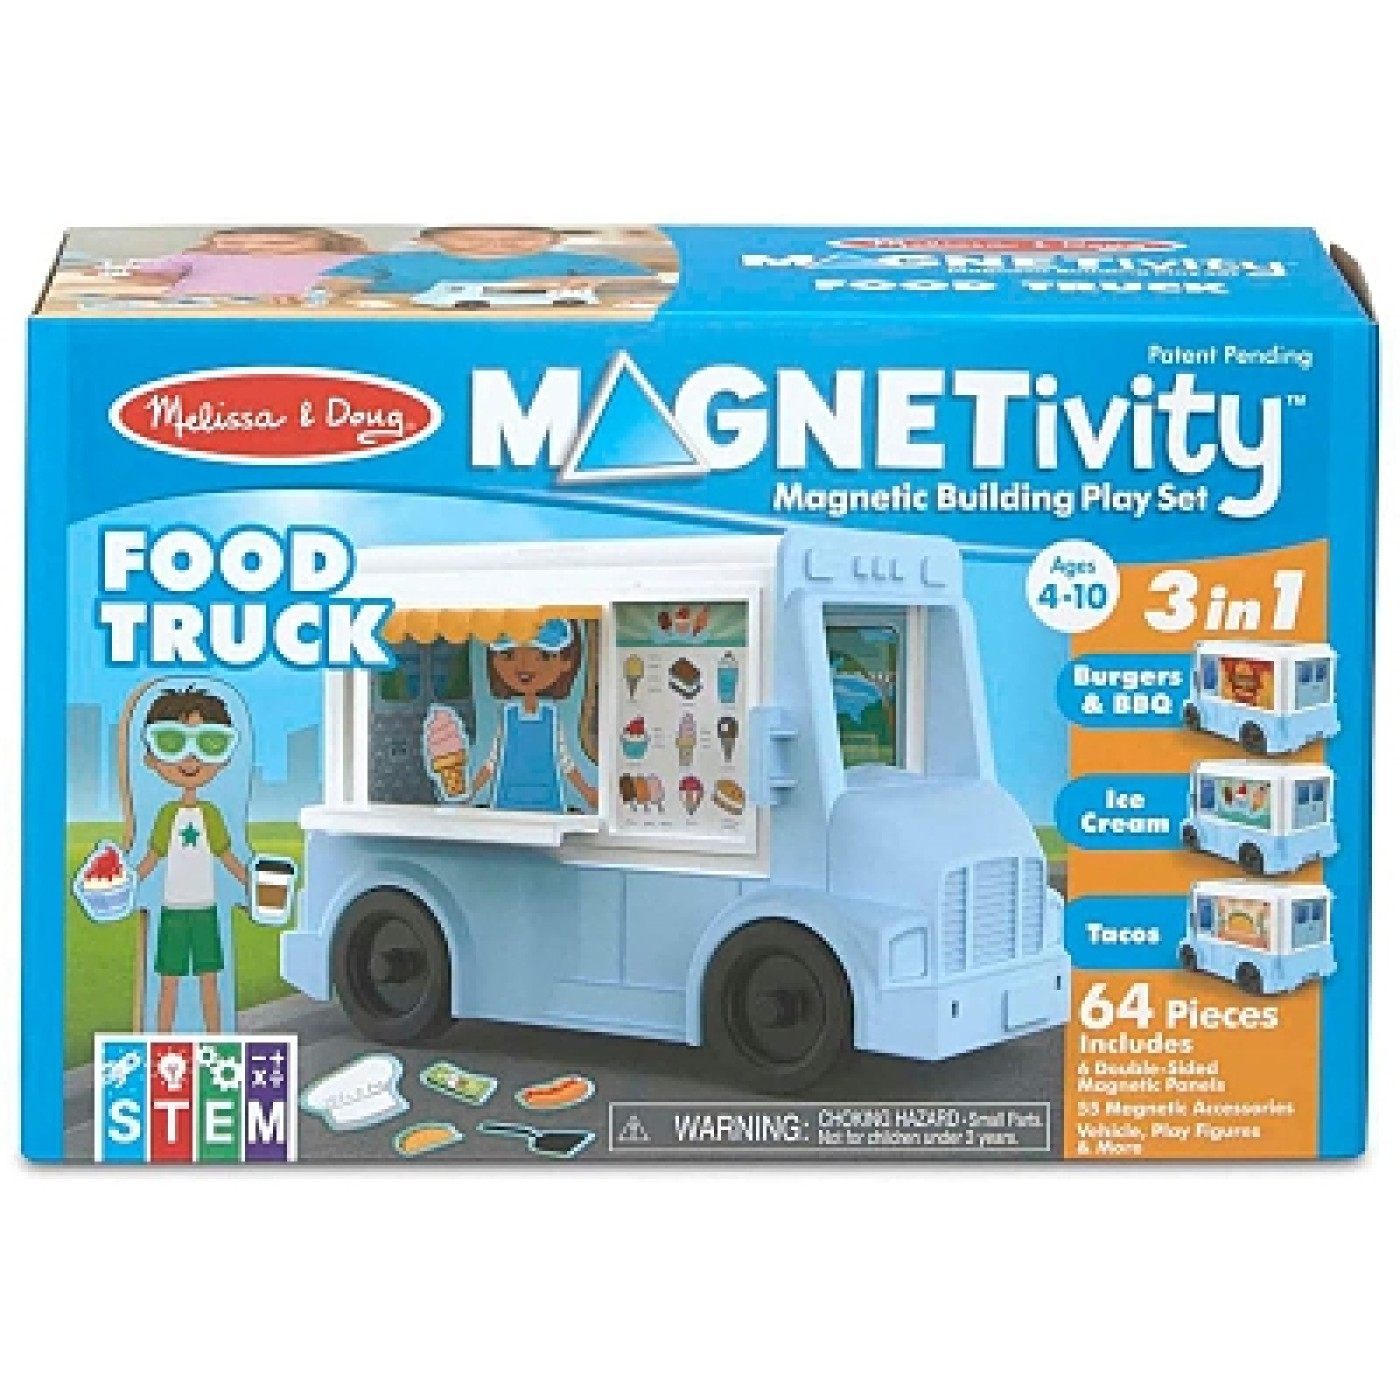 Building Play Set Food Truck Magnetivity